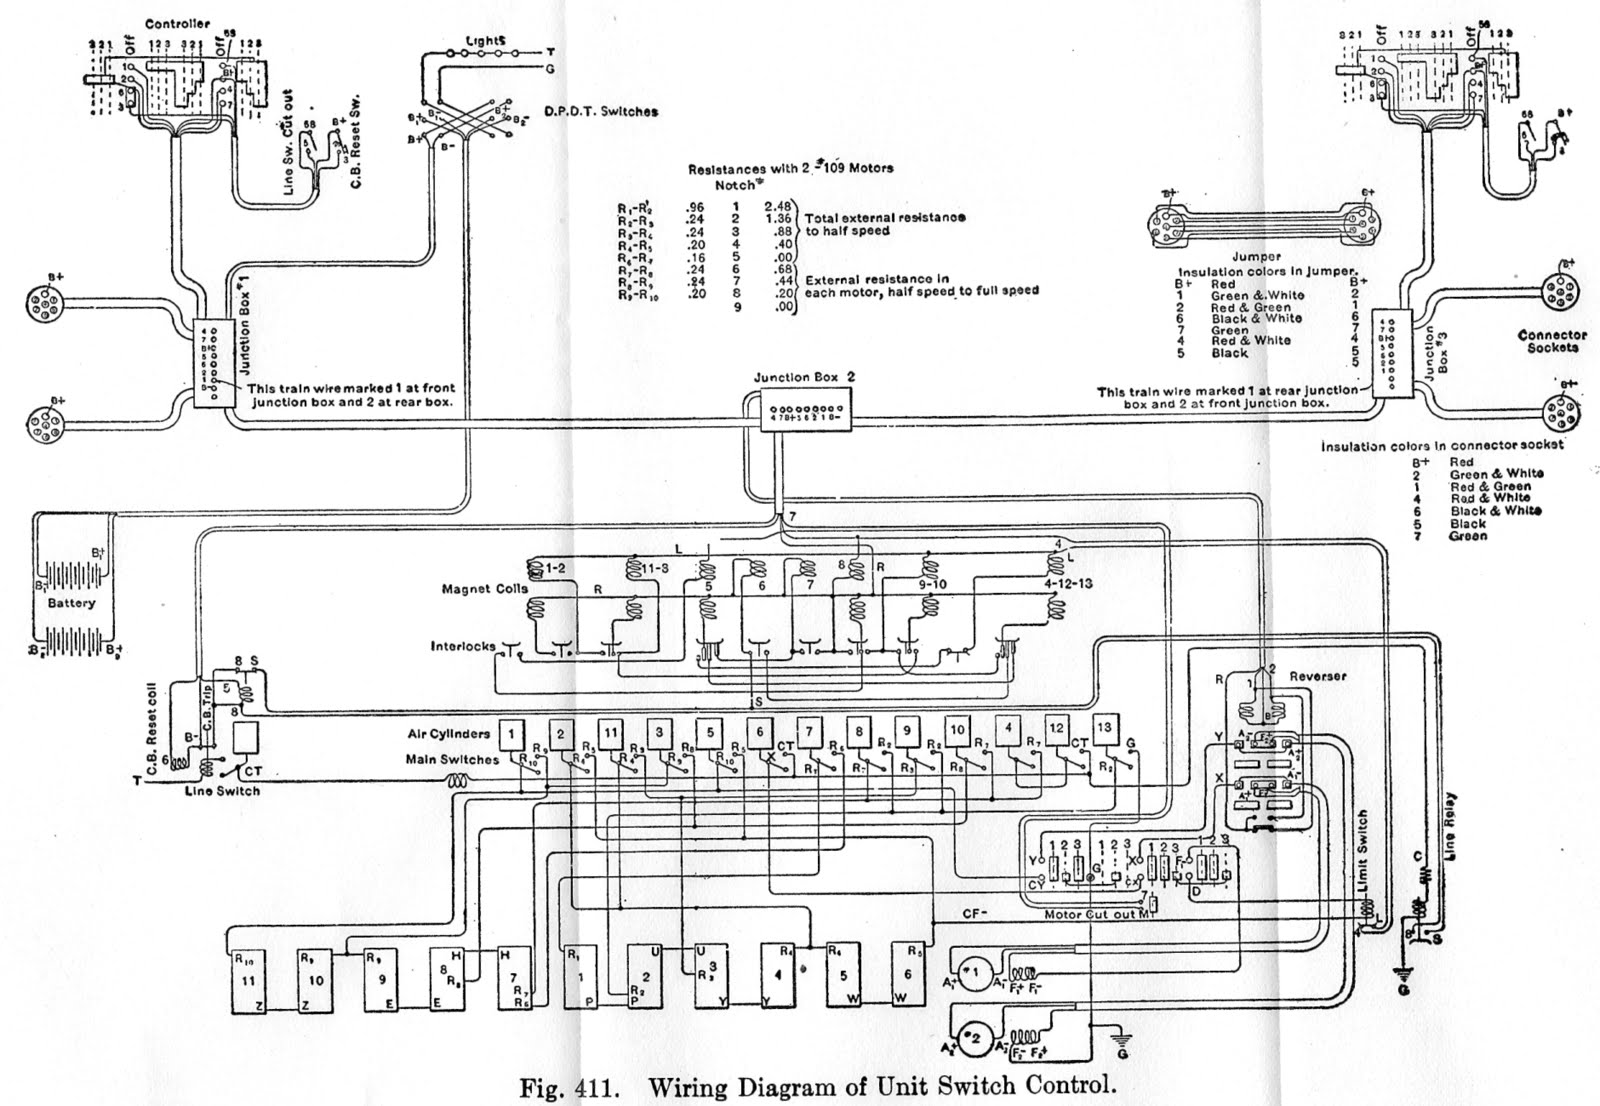 Westinghouse%2BAB.tif hicks car works control circuit diagrams westinghouse electric motor wiring diagrams at edmiracle.co